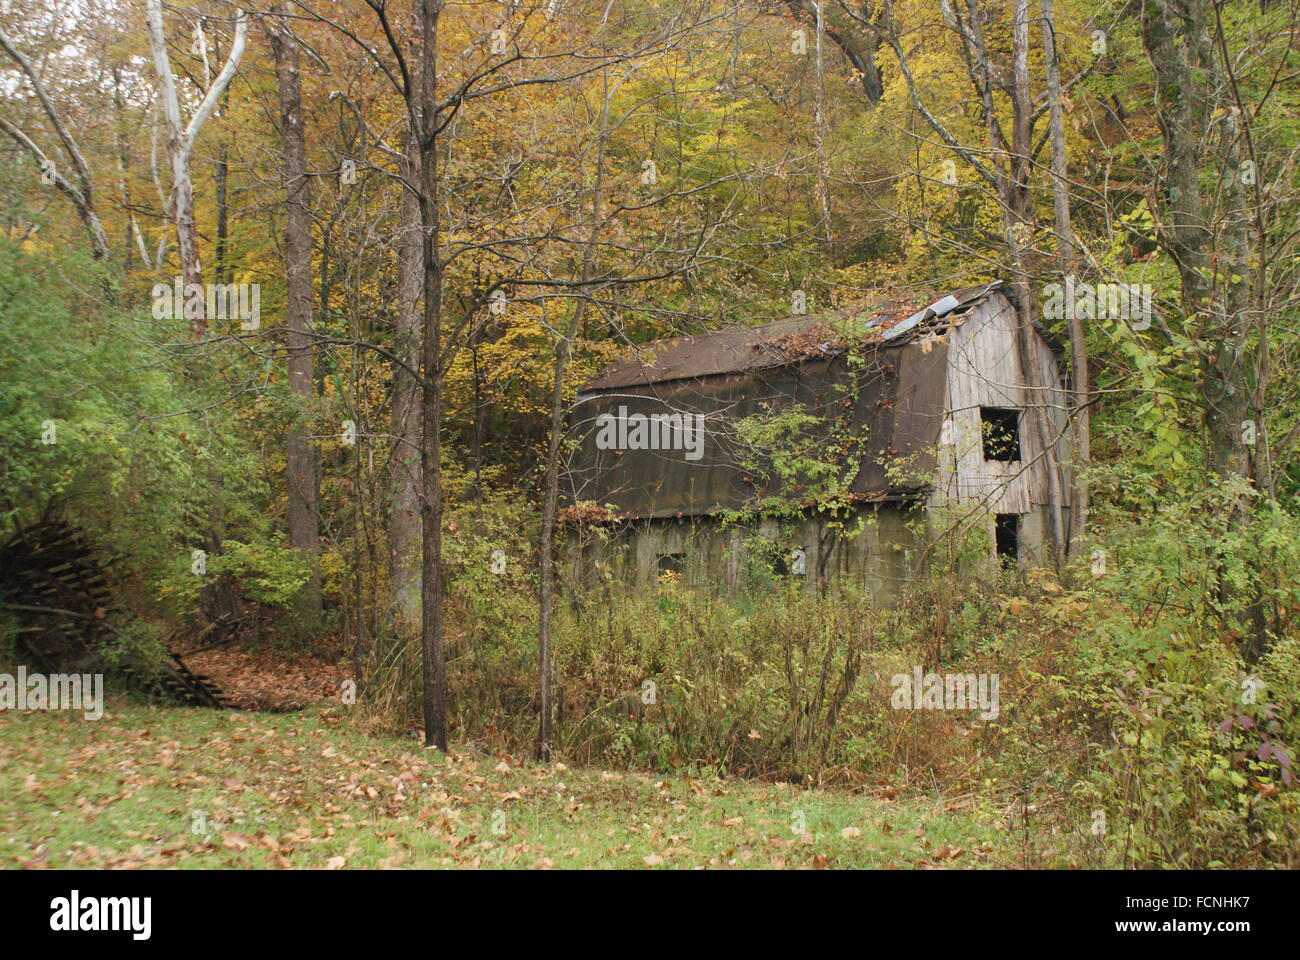 The beauty of old abandon barns - Stock Image